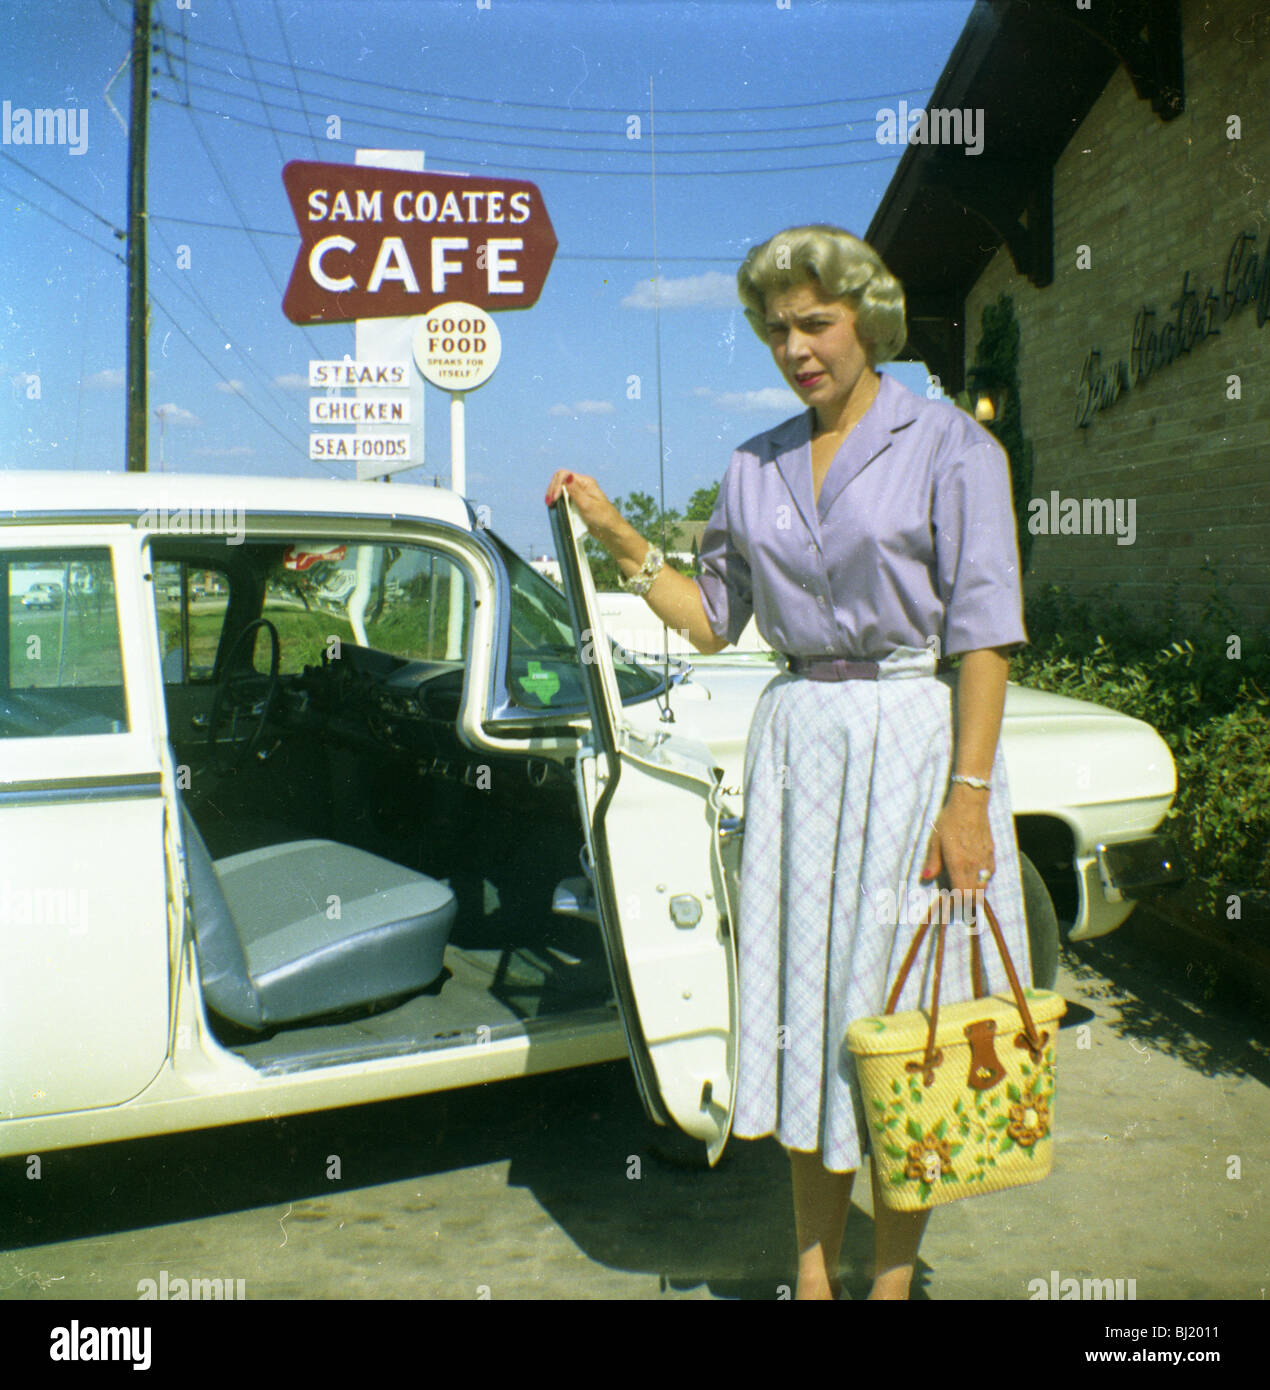 A woman opens the door of her car outside the Sam Coates Cafe in Waco, Texas in the early 1960s. - Stock Image